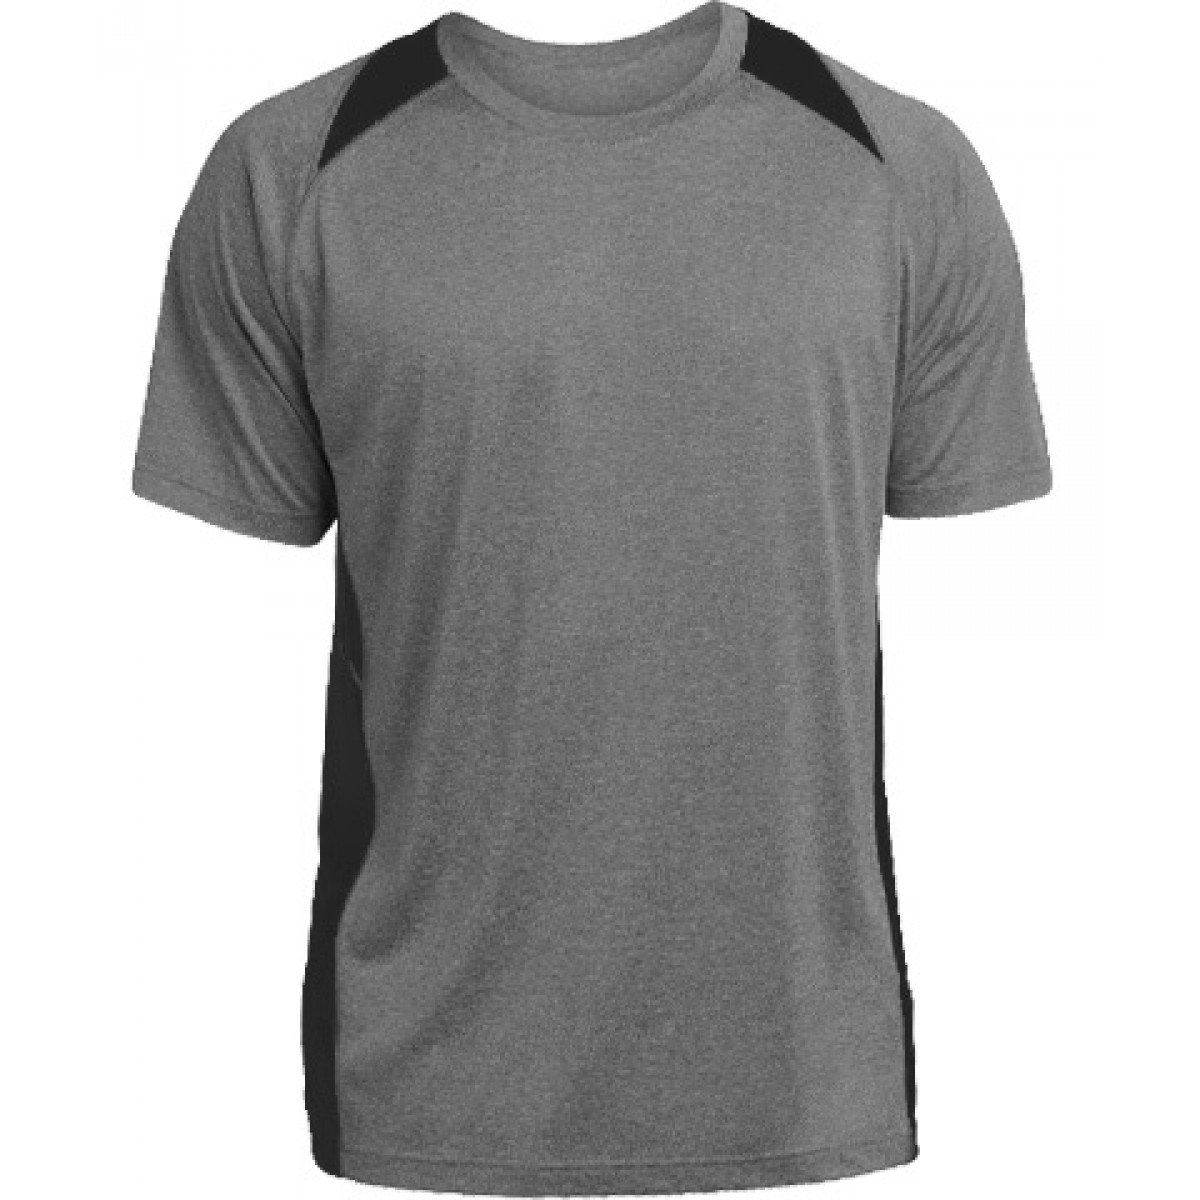 Heather Colorblock Contender™ Tee-Gray/Black-M